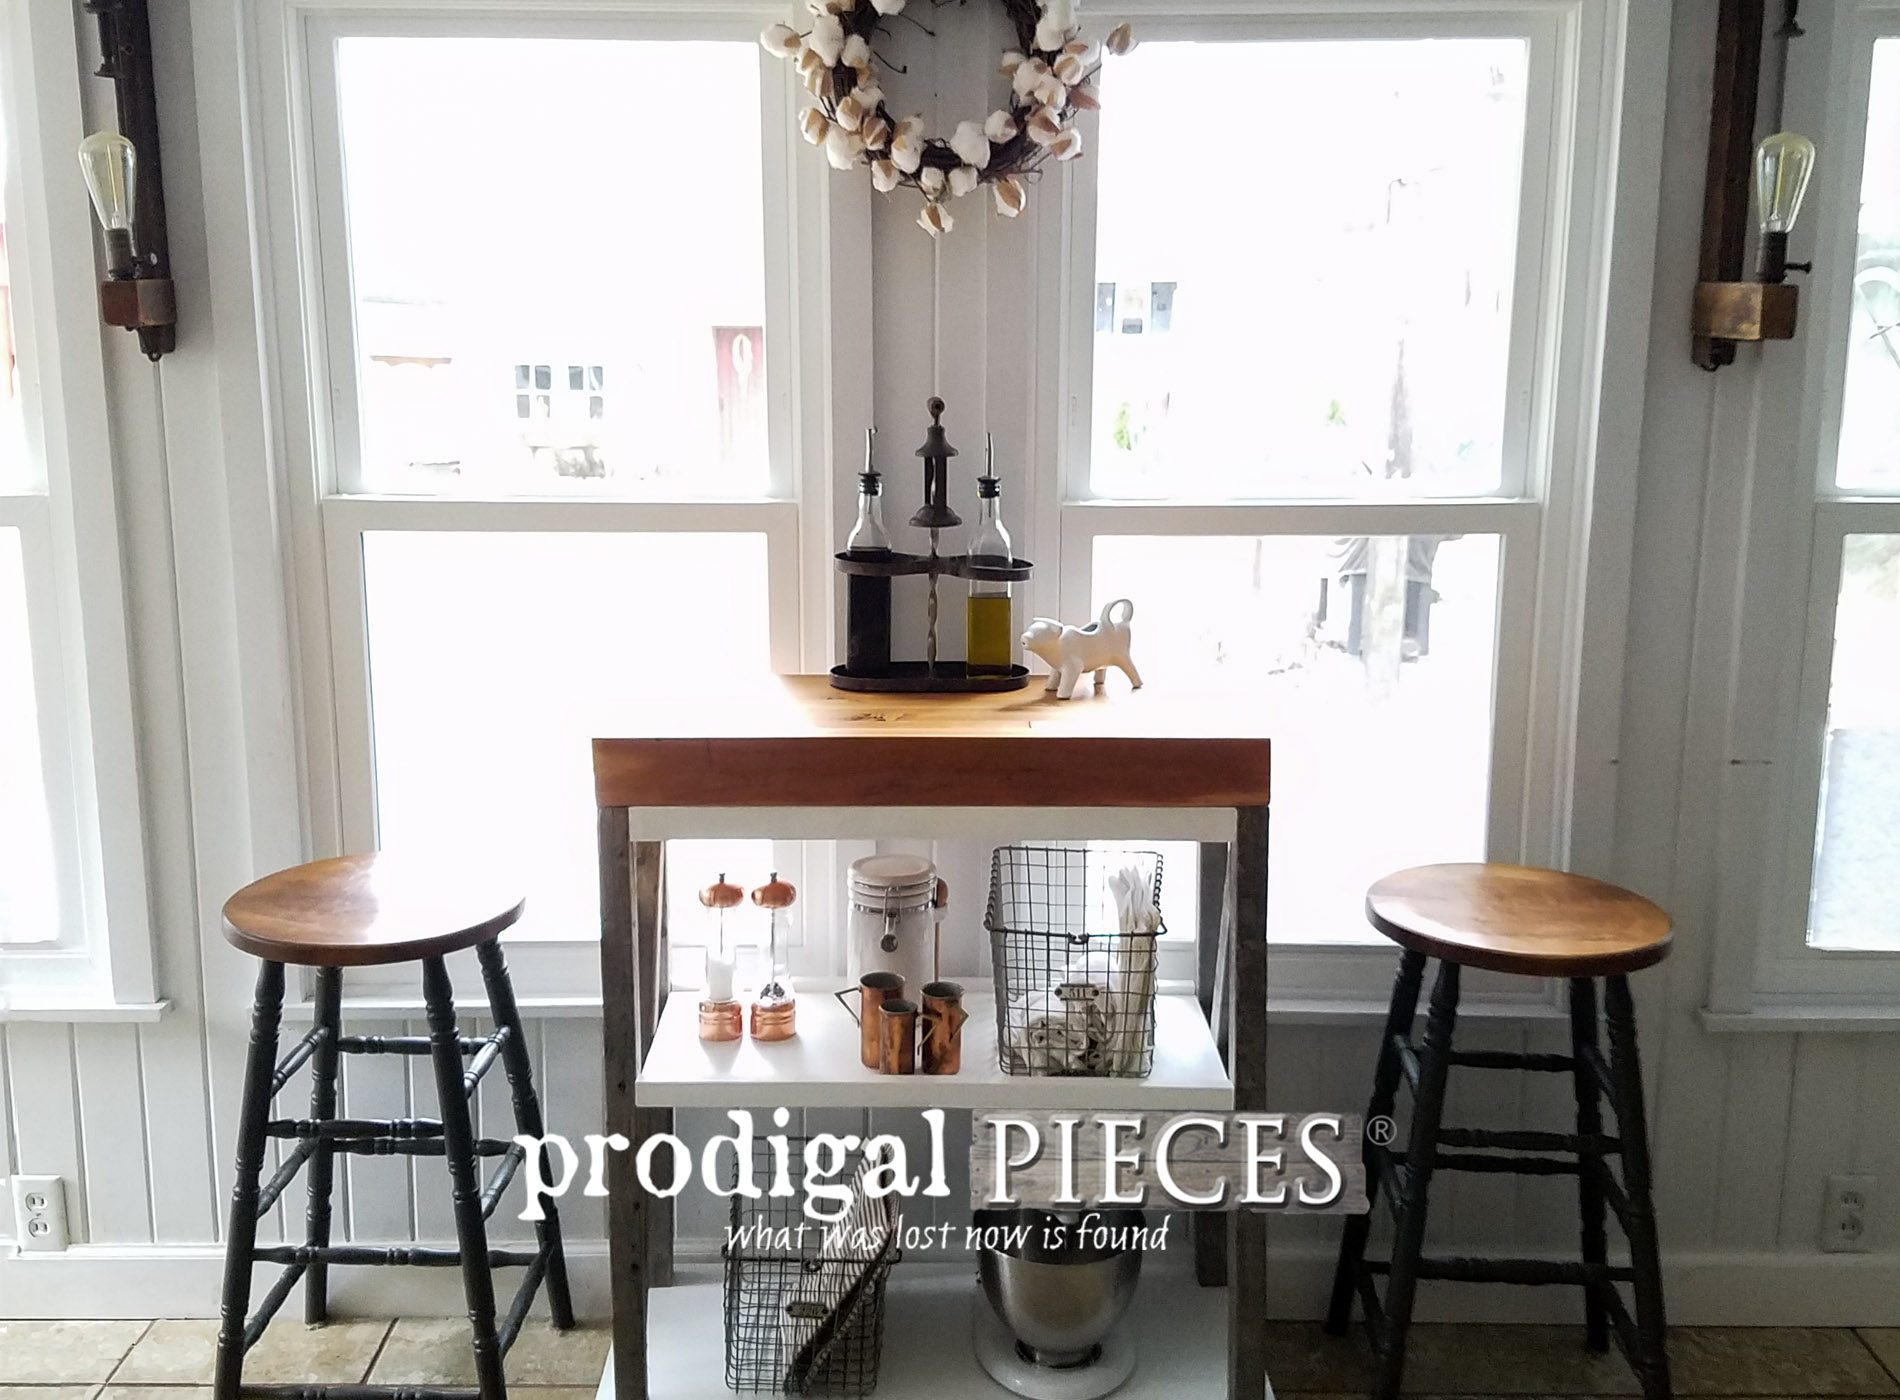 Featured DIY Butcher Block Cart Made from Repurposed Materials by Prodigal Pieces | prodigalpieces.com